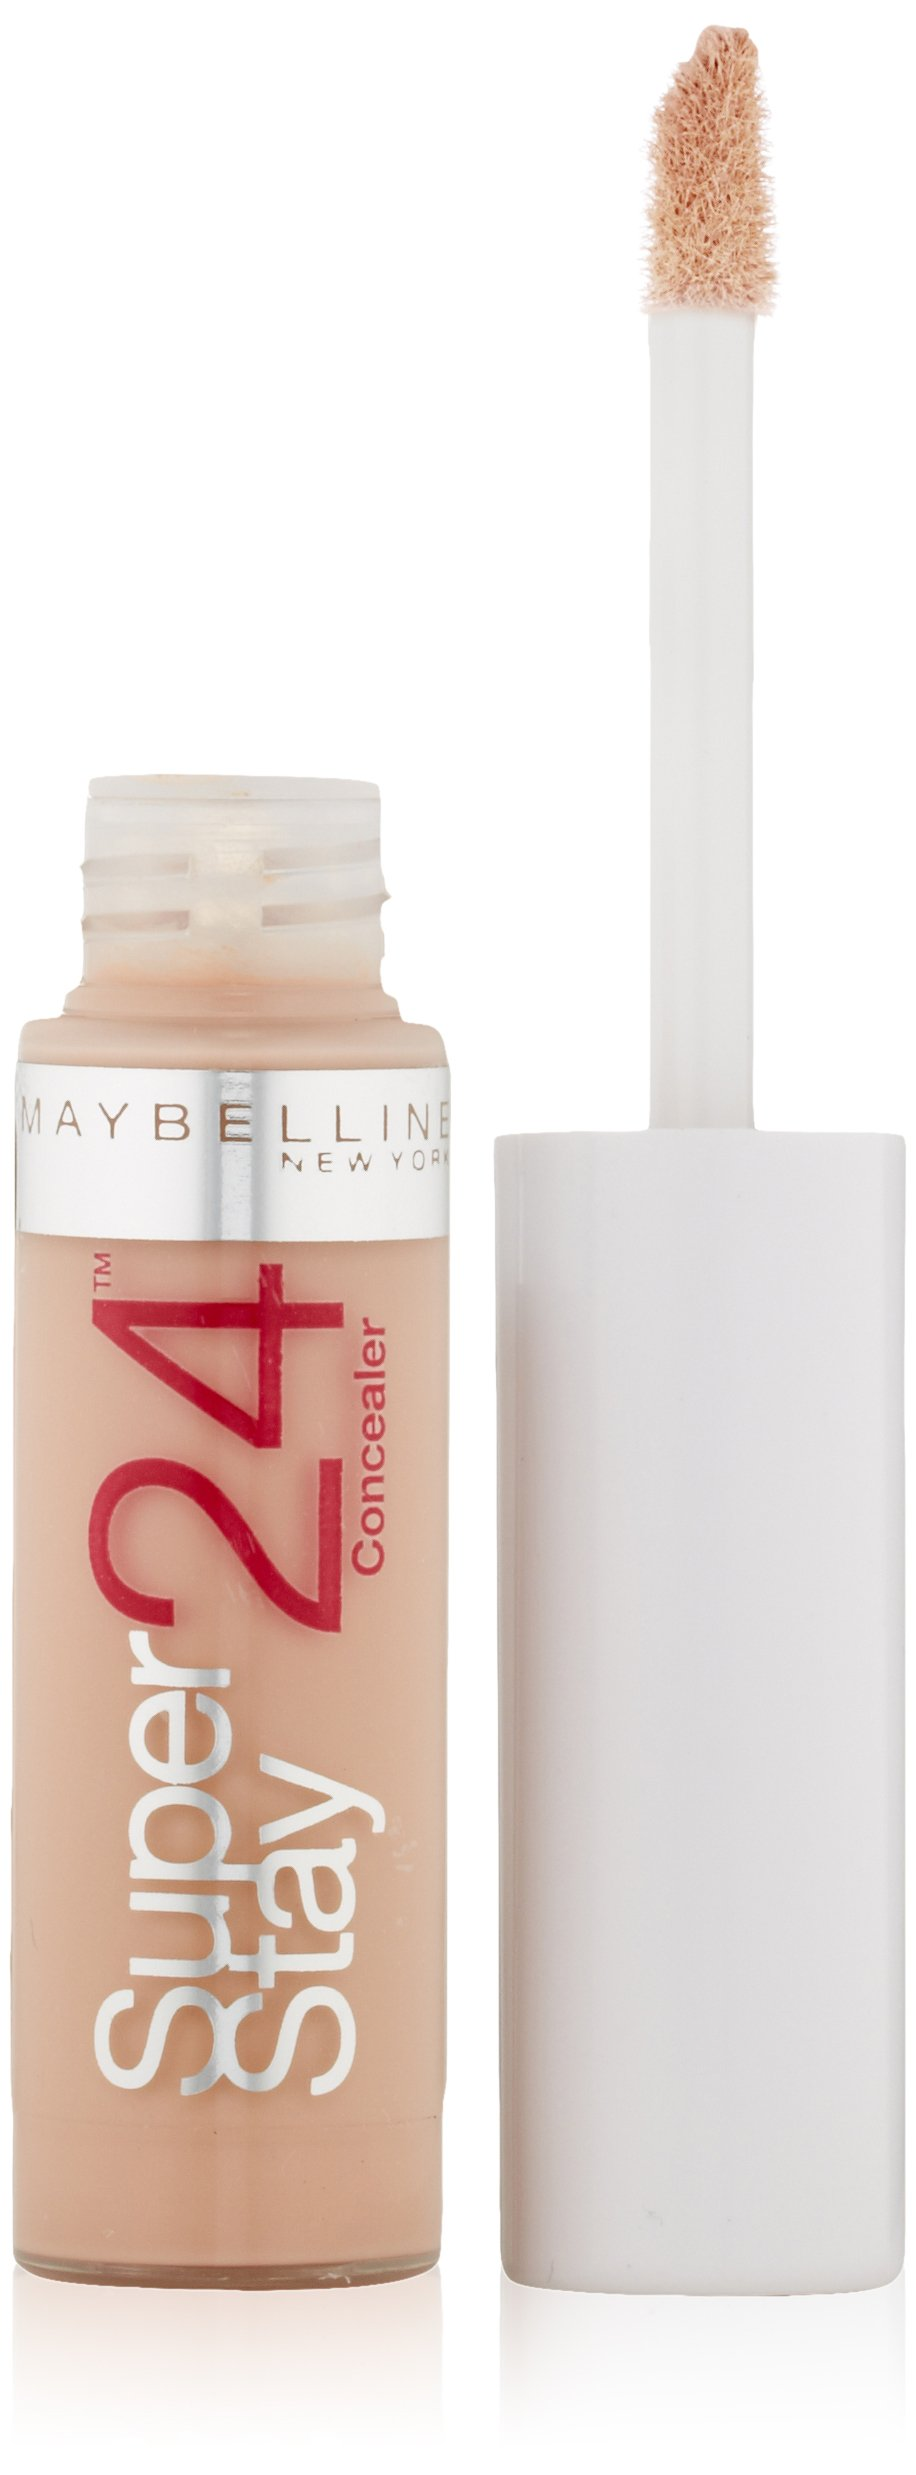 Maybelline New York Super Stay 24Hr Concealer, Light 730, 0.18 Fluid Ounce